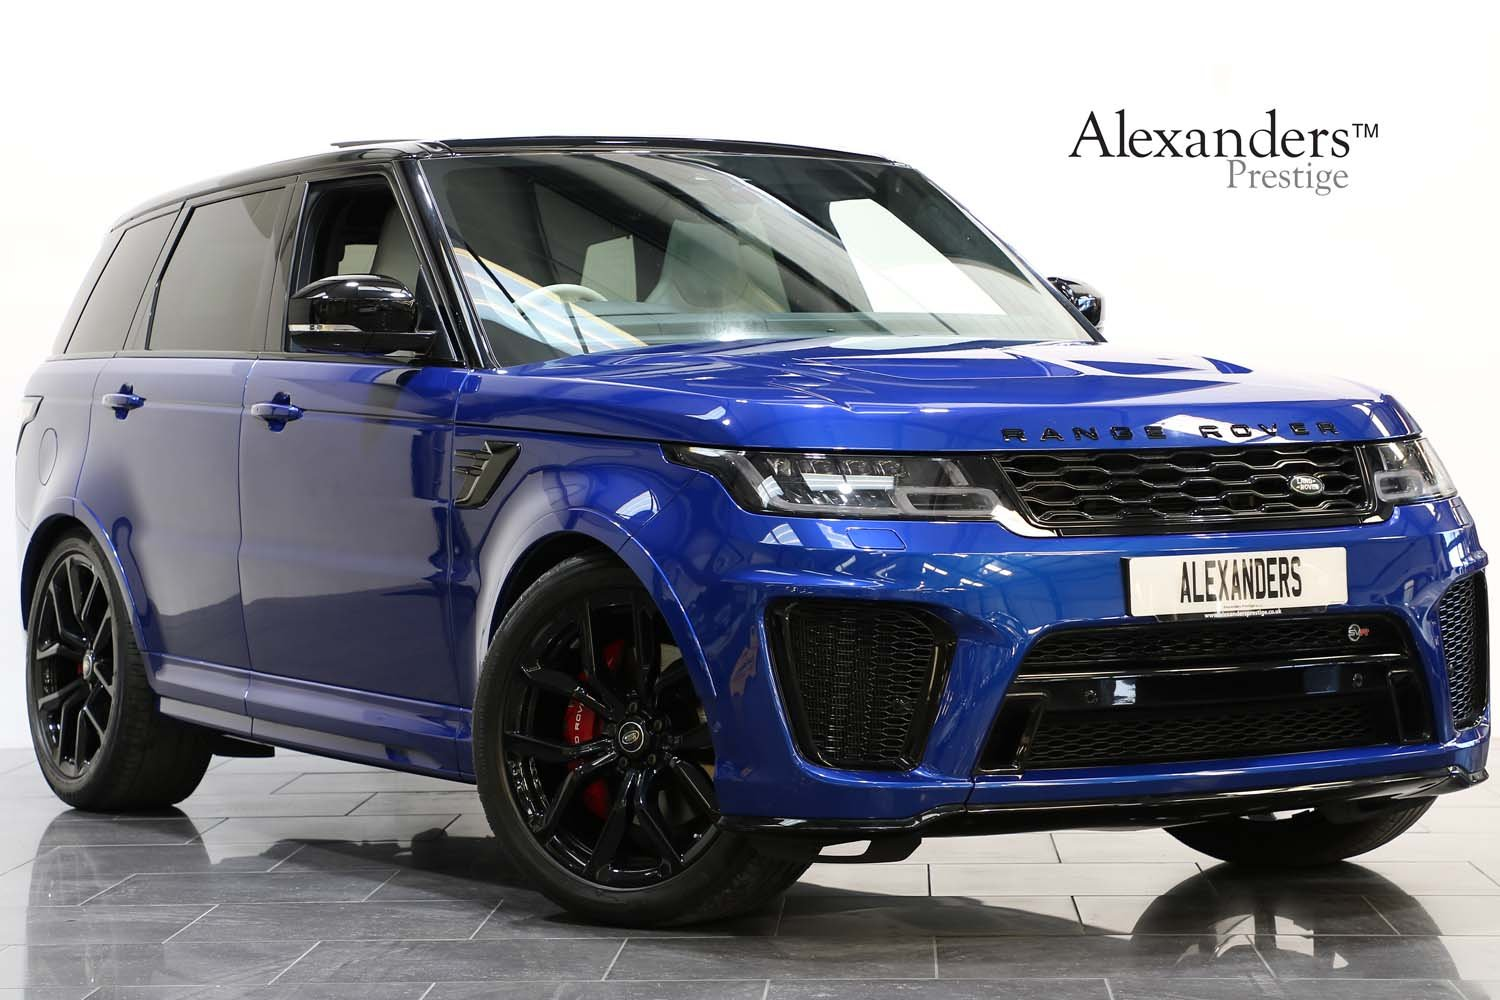 2018 18 RANGE ROVER 5.0 V8 SUPERCHARGED SVR AUTO For Sale (picture 1 of 6)